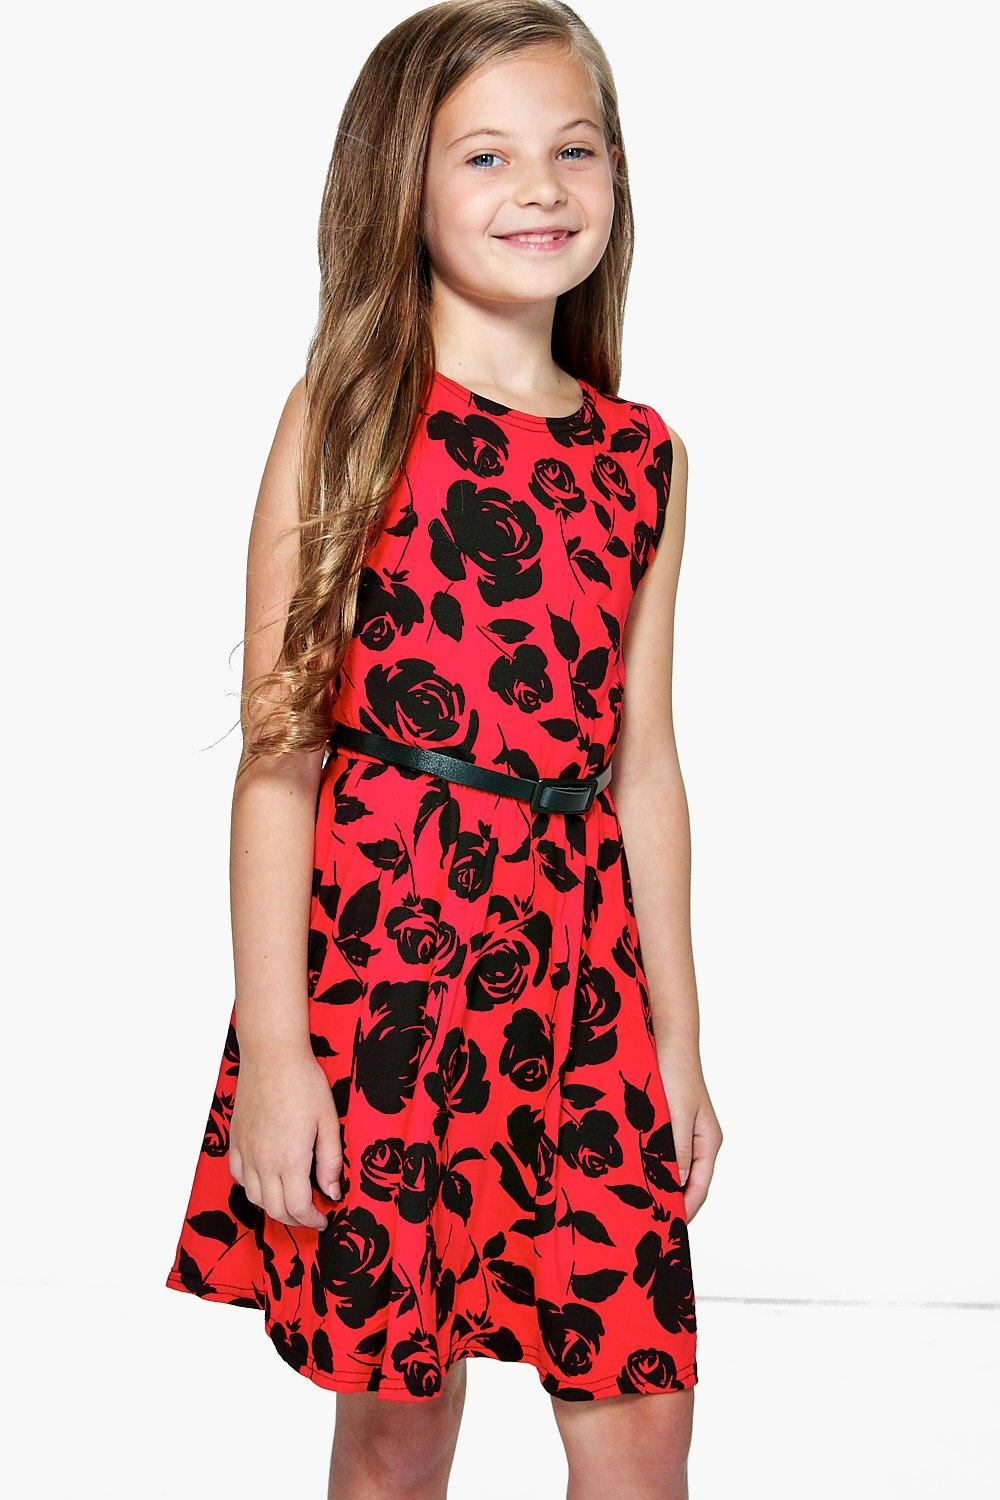 09861e85db25 Girls Floral Belted Skater Dress. Hover to zoom